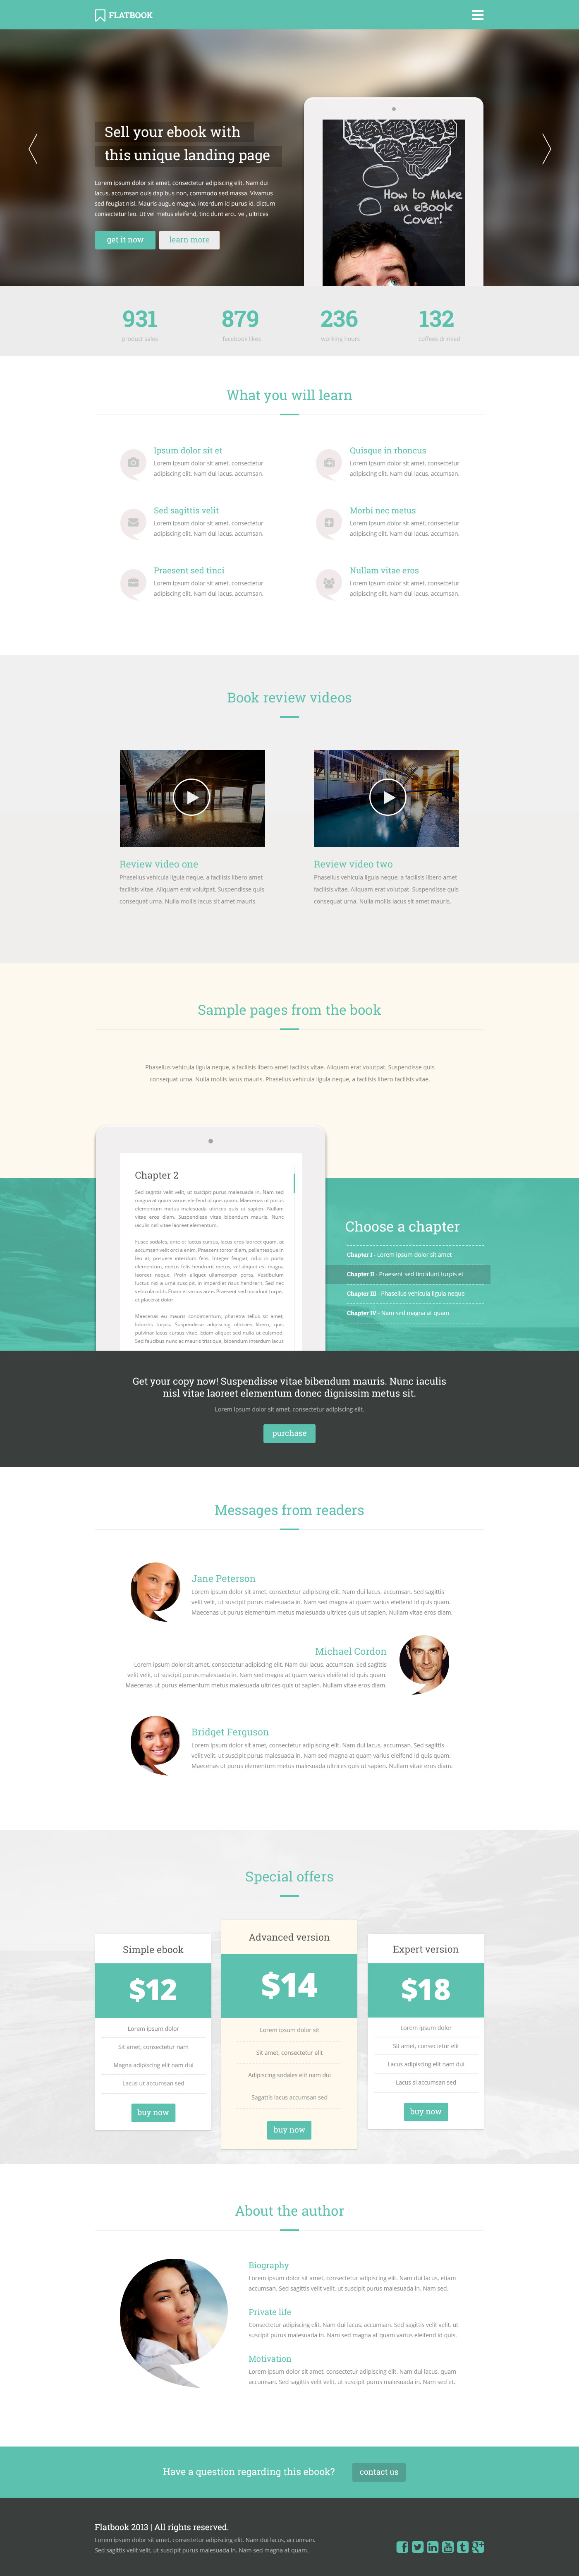 FlatBook - Flat Ebook & App Selling Psd Template